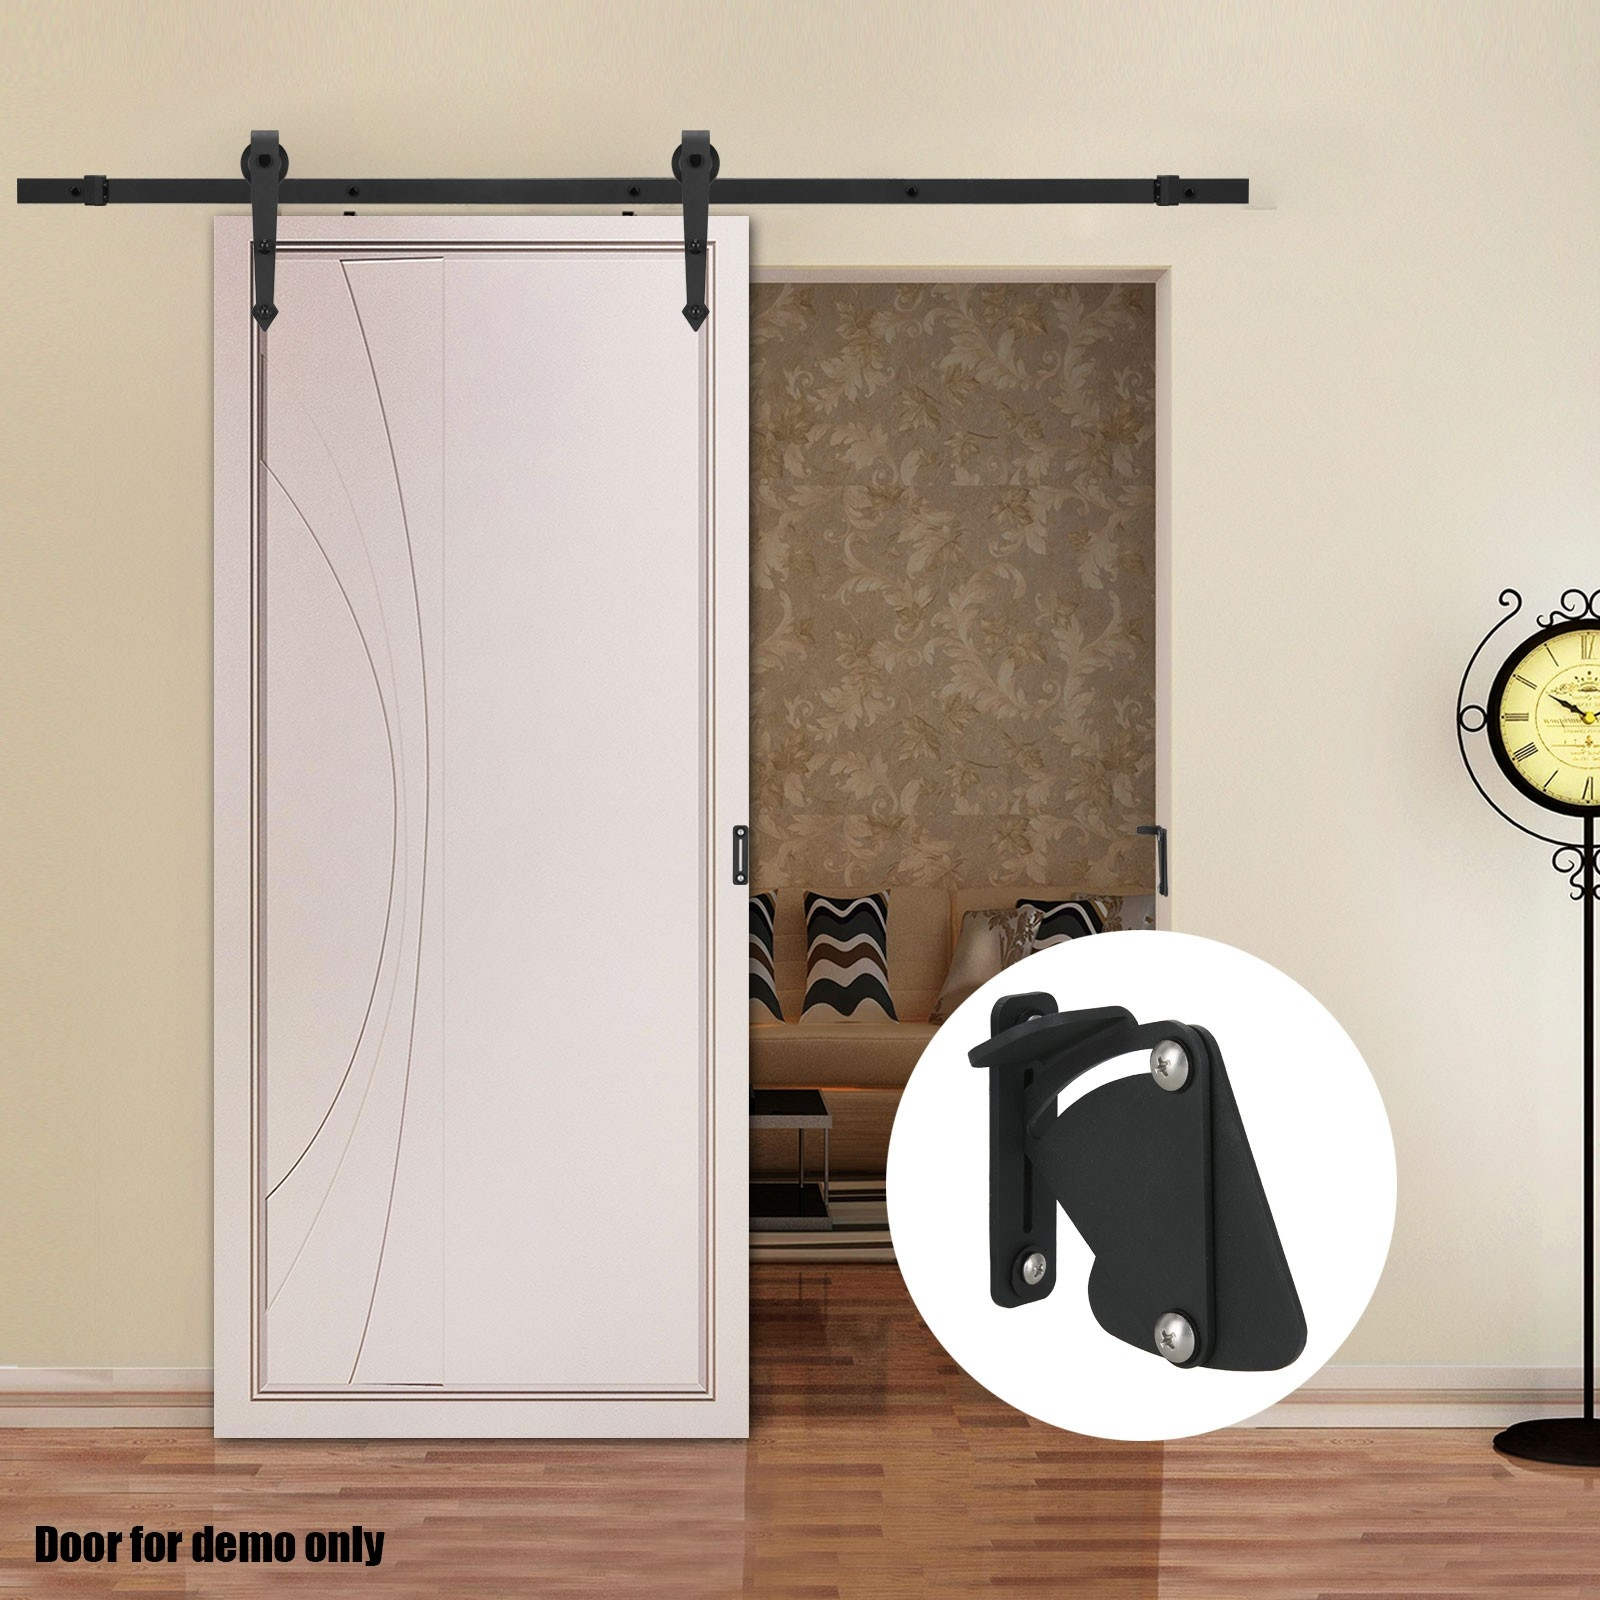 Locking Sliding Barn Door Hardwaresliding barn door lock fancy sliding barn door hardware for